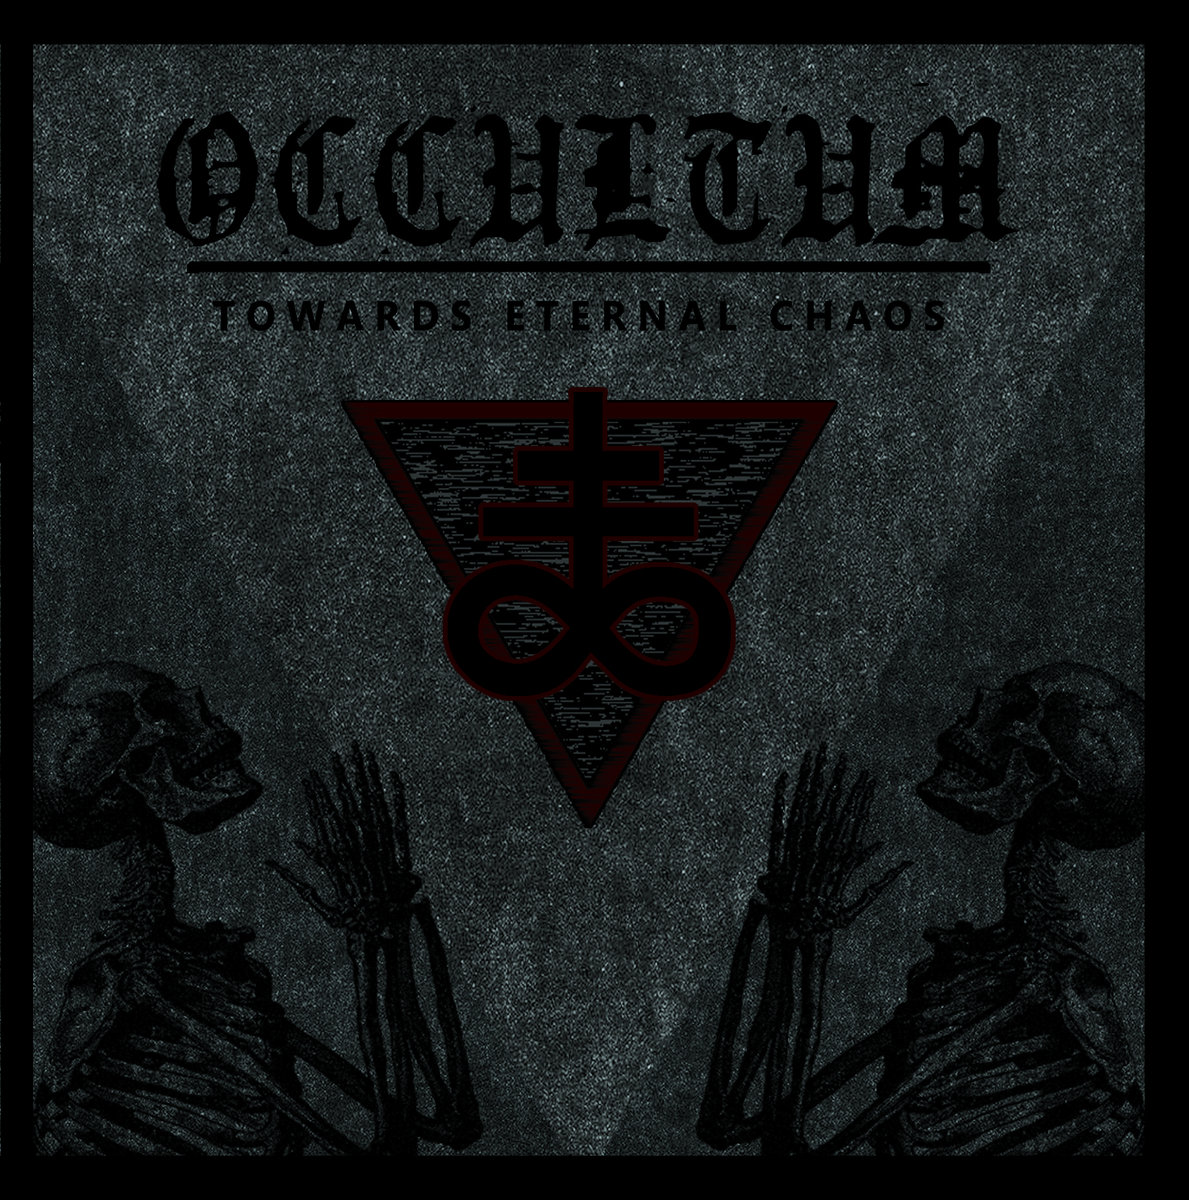 Occultum – Towards Eternal Chaos